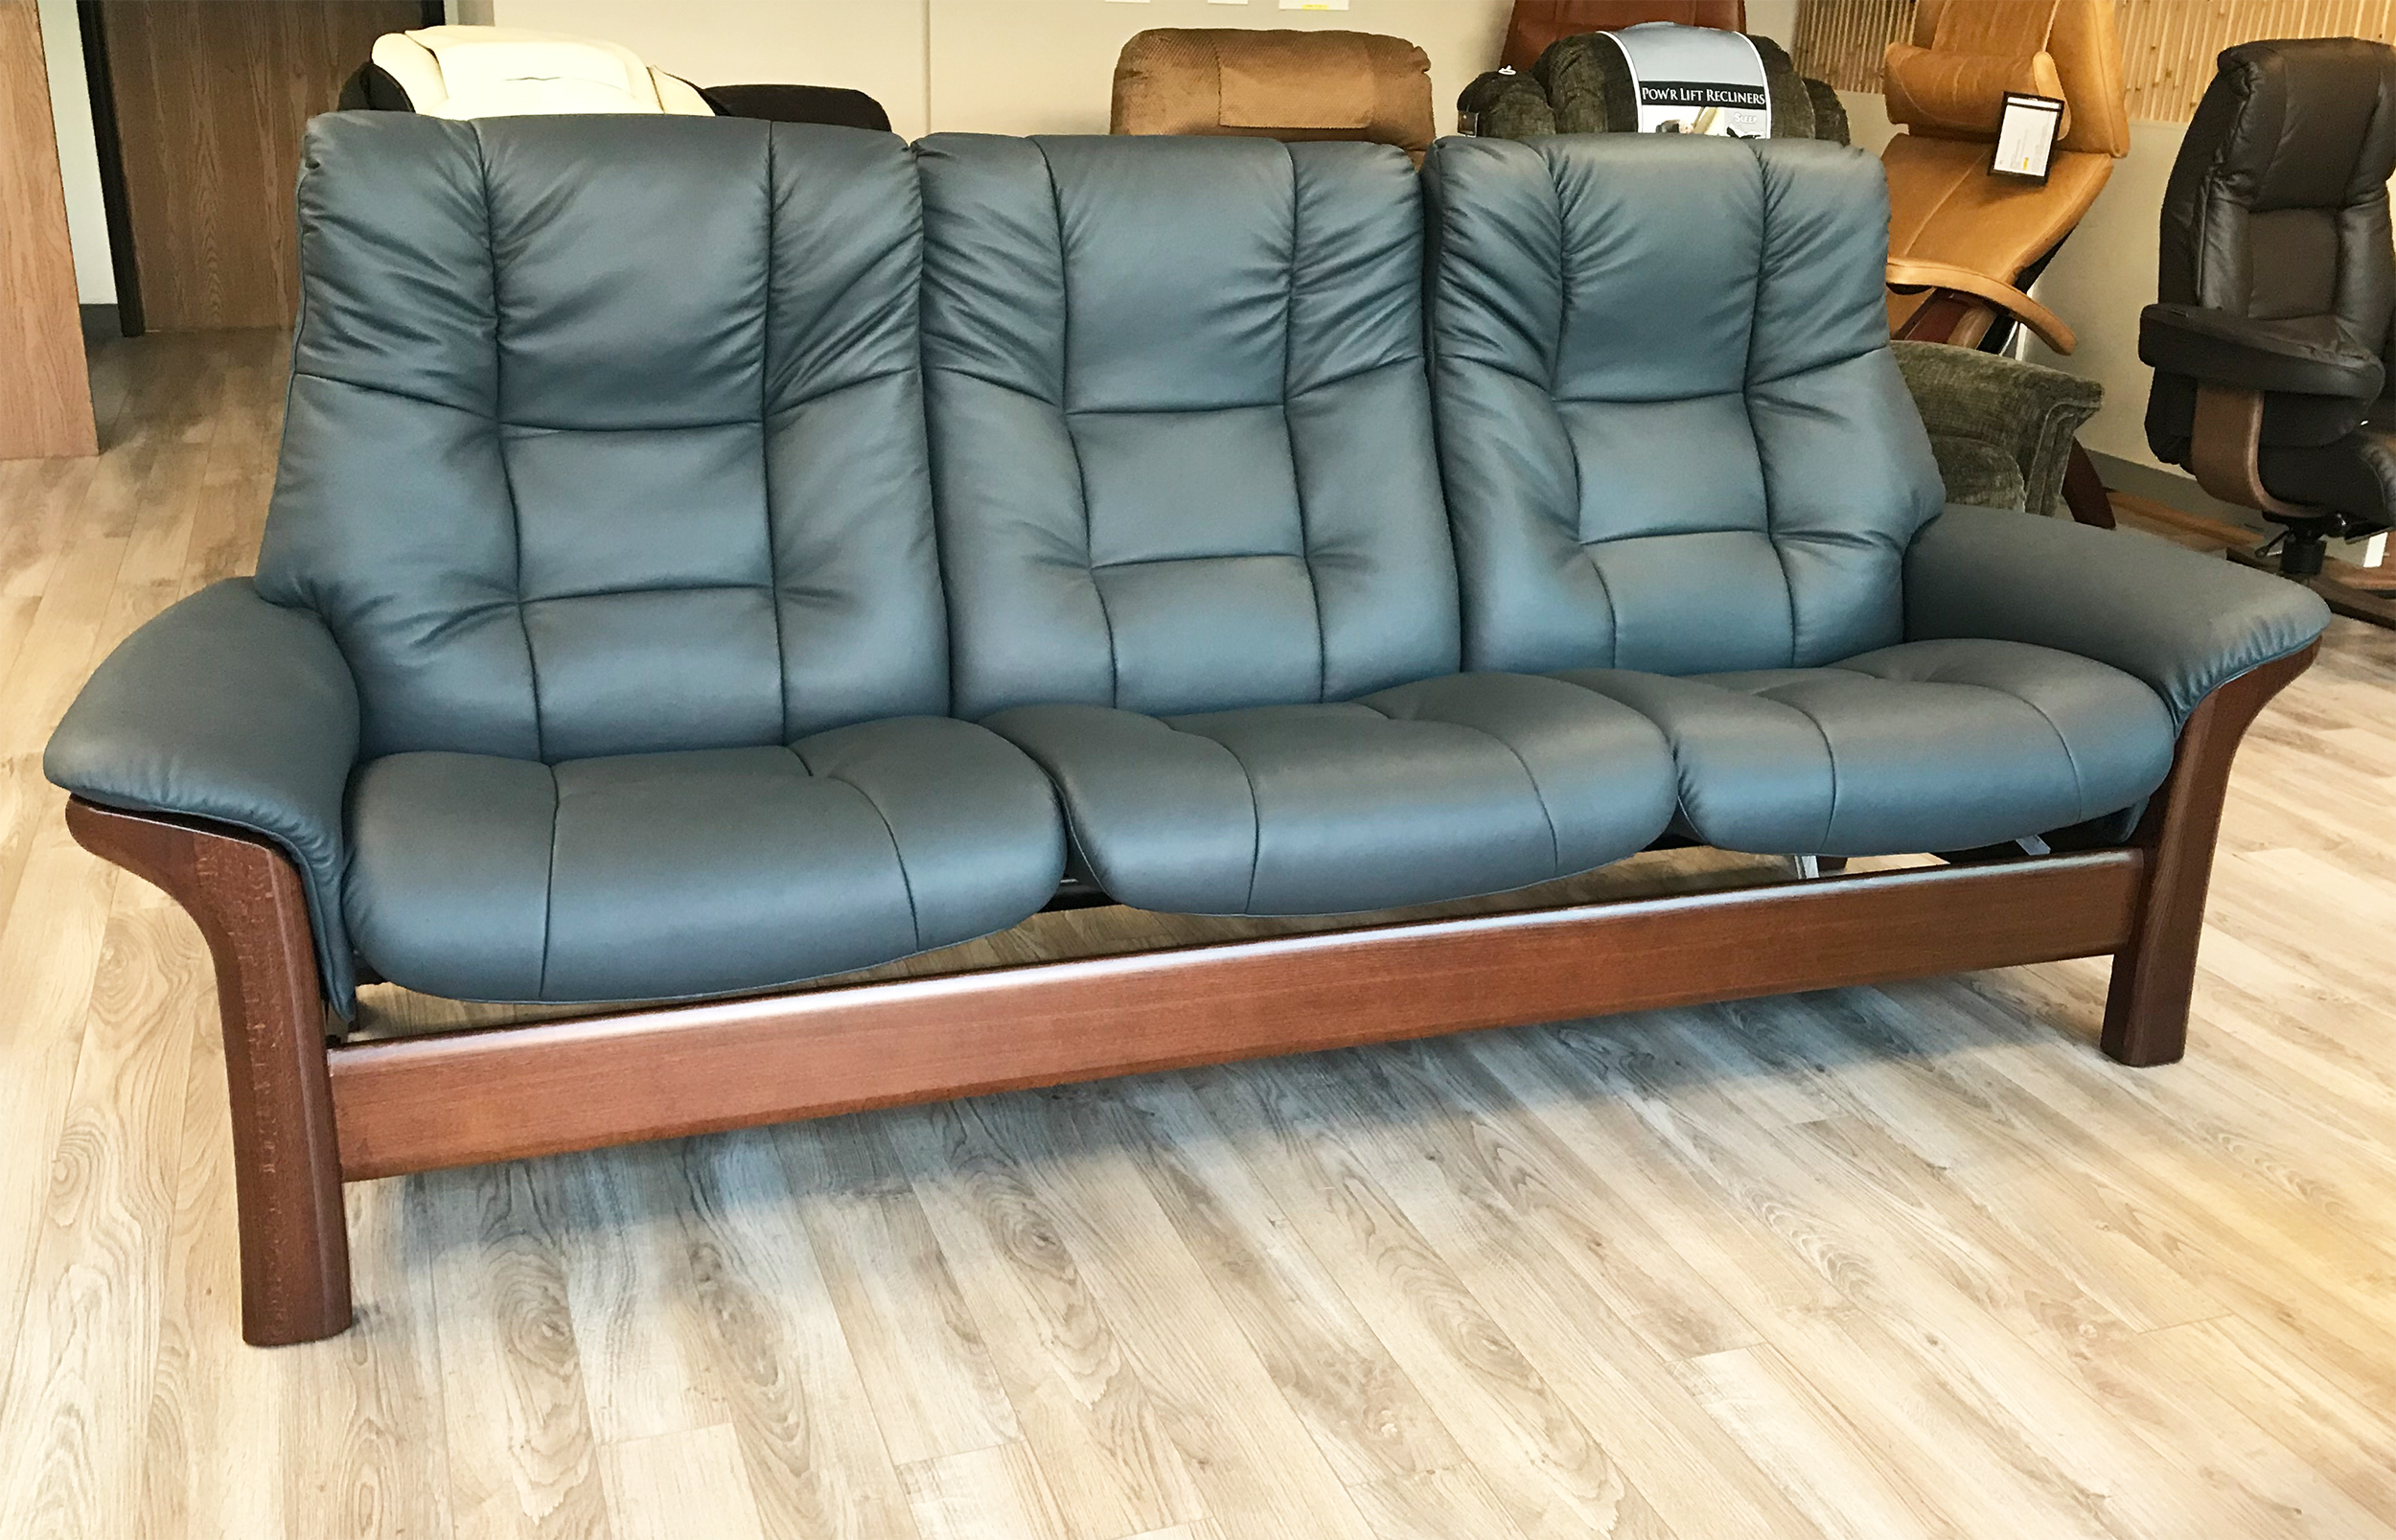 Stressless Sofa Preise Stressless Couch Interesting Stressless Couch Couch Furniture